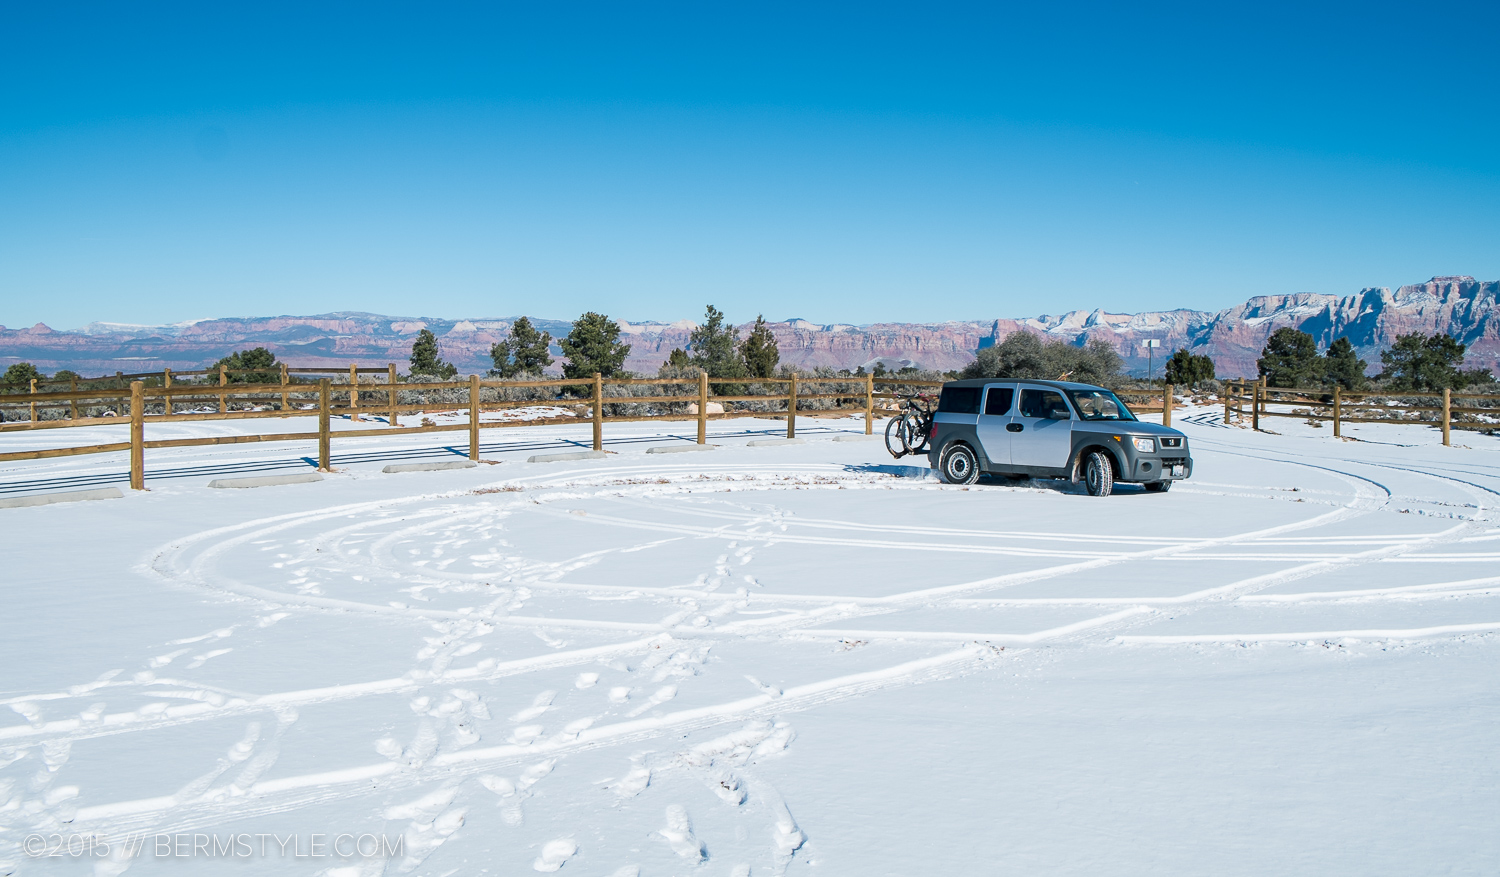 After driving our to Gooseberry Mesa and finding the trail covered in snow, I cut some donuts in the parking lot before headed to St George to ride.